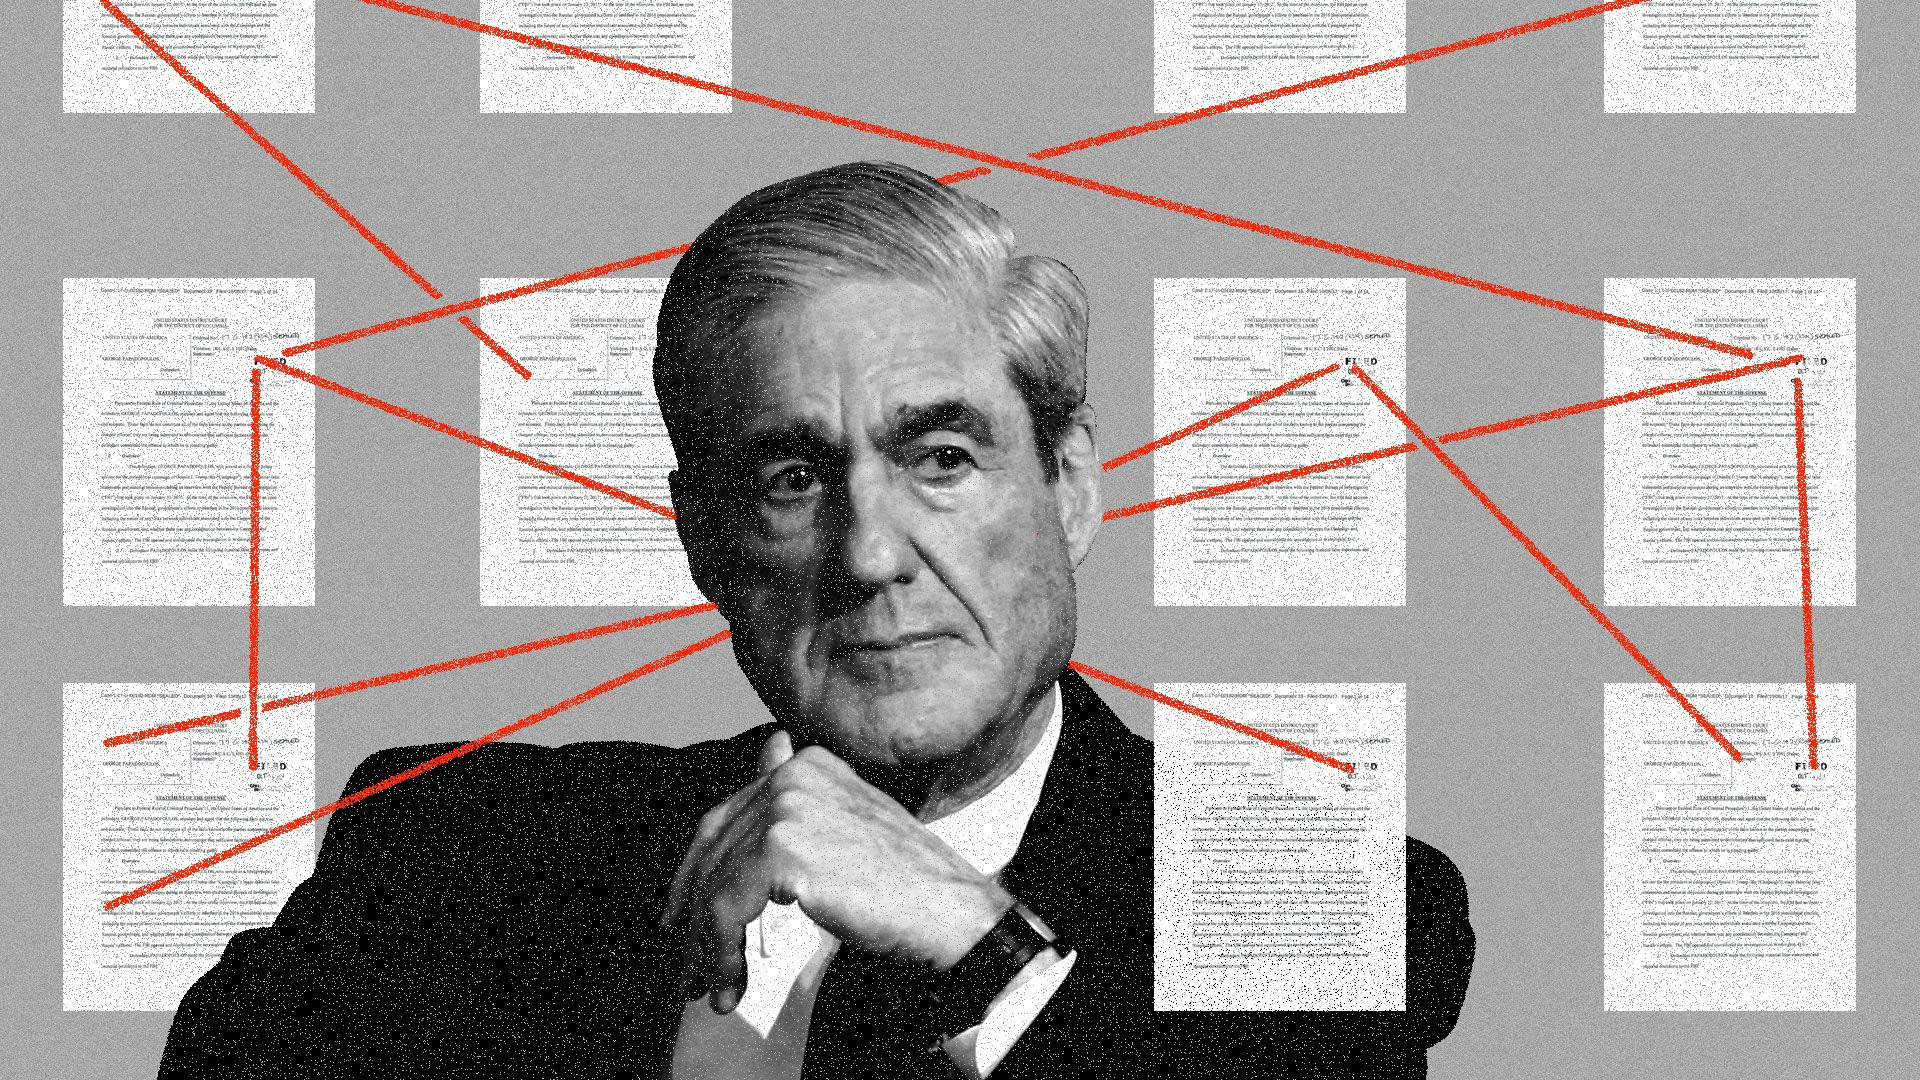 Robert Mueller surrounded by interconnected documents